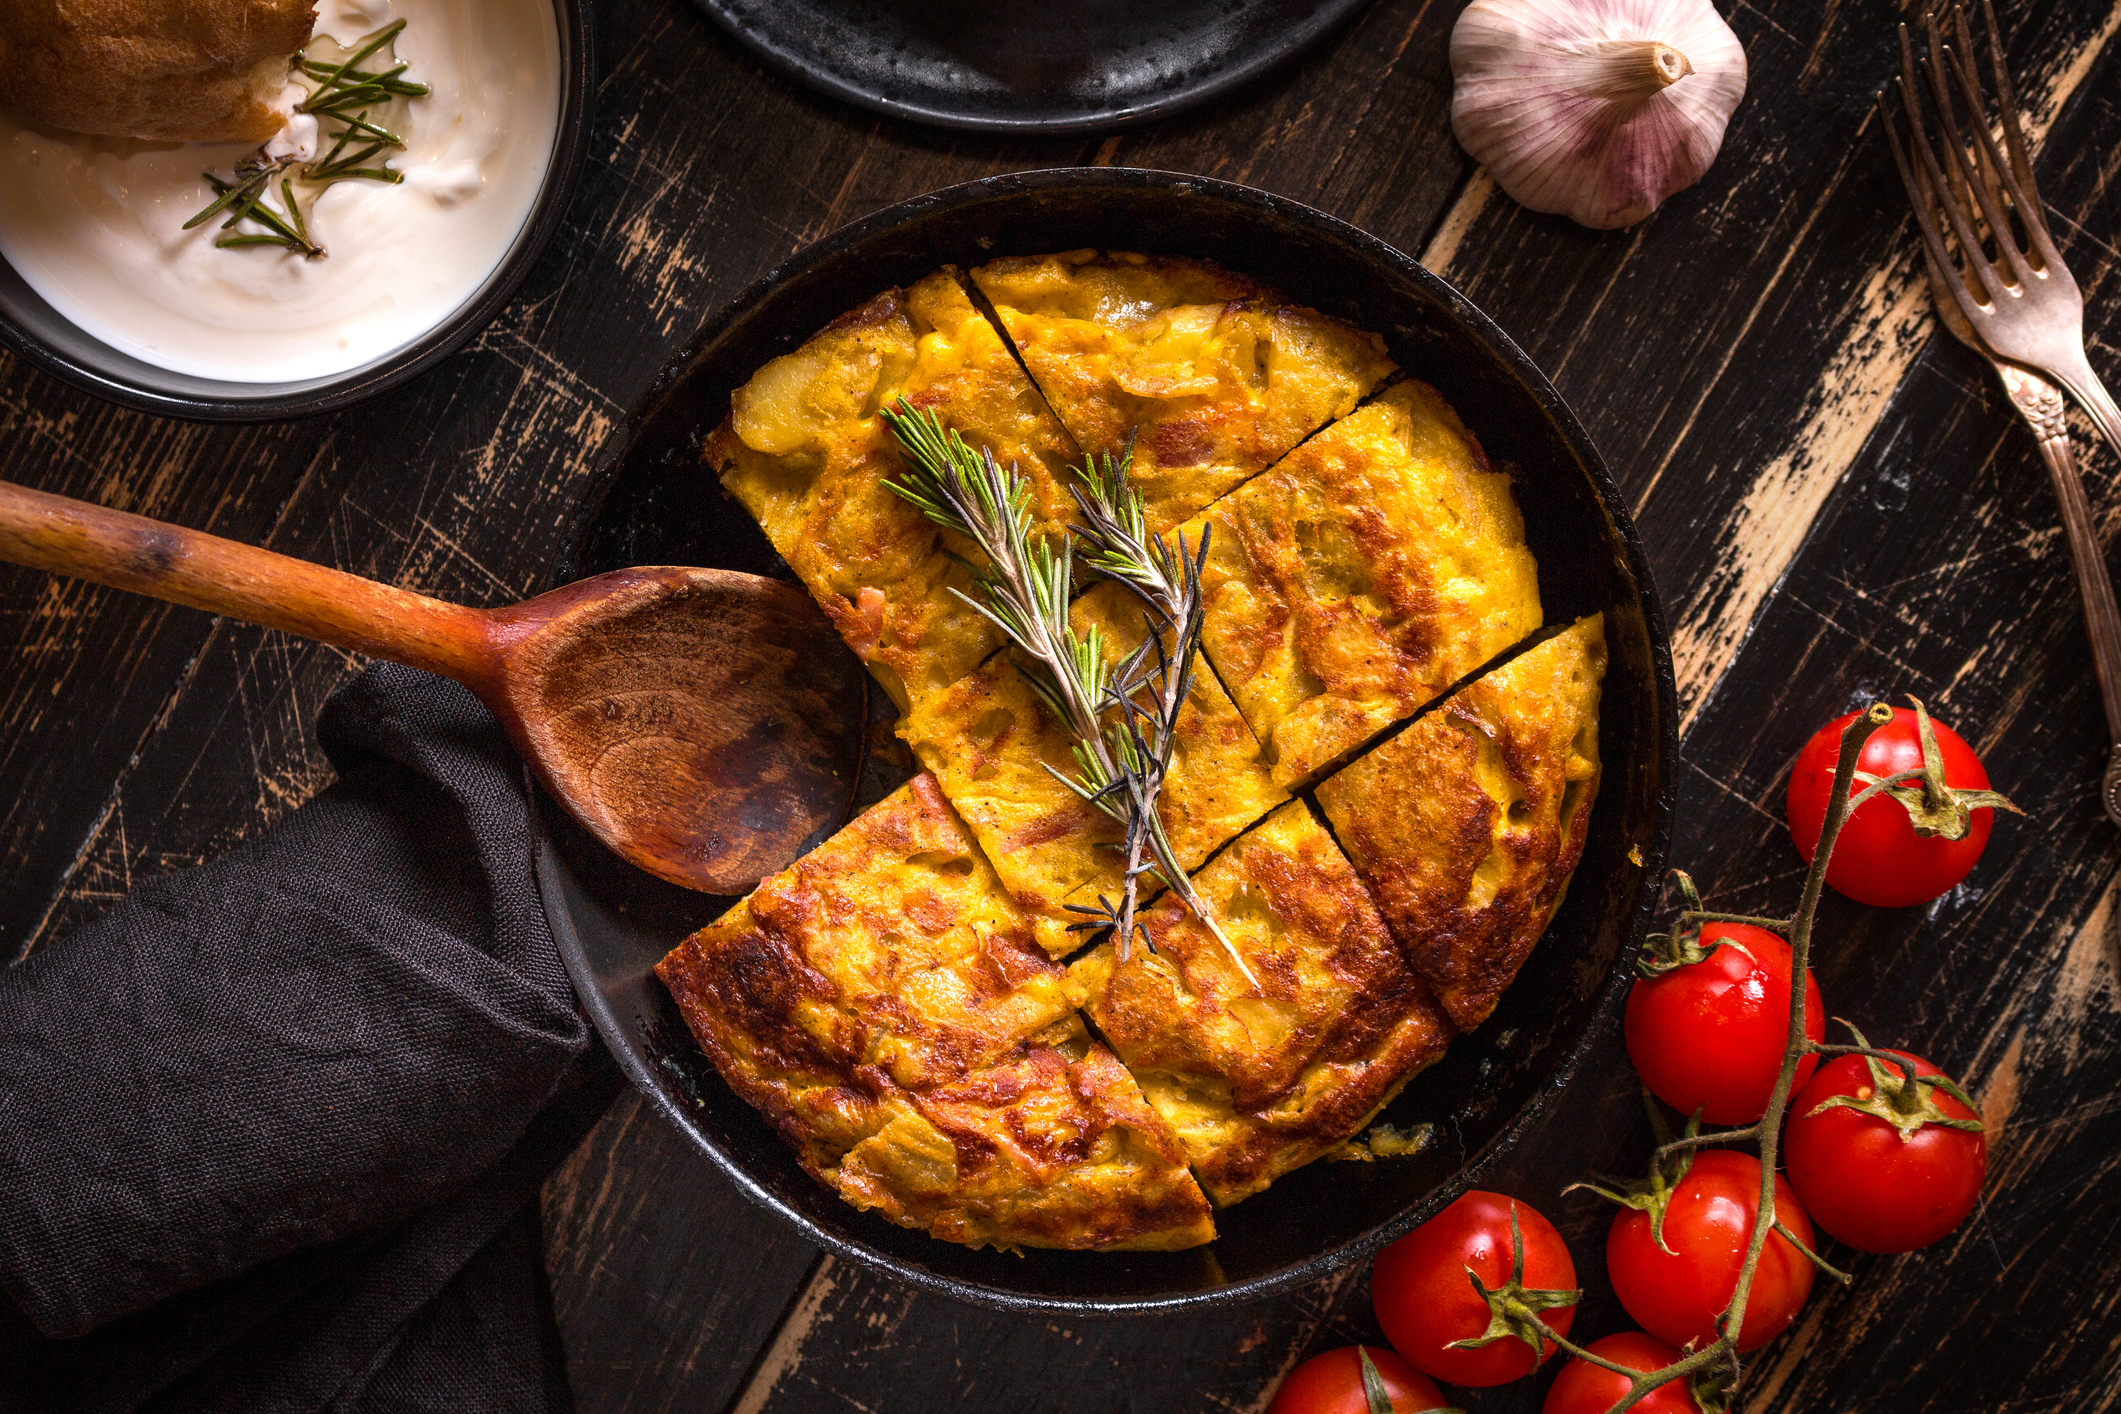 Getty Images - Spanish Omlette